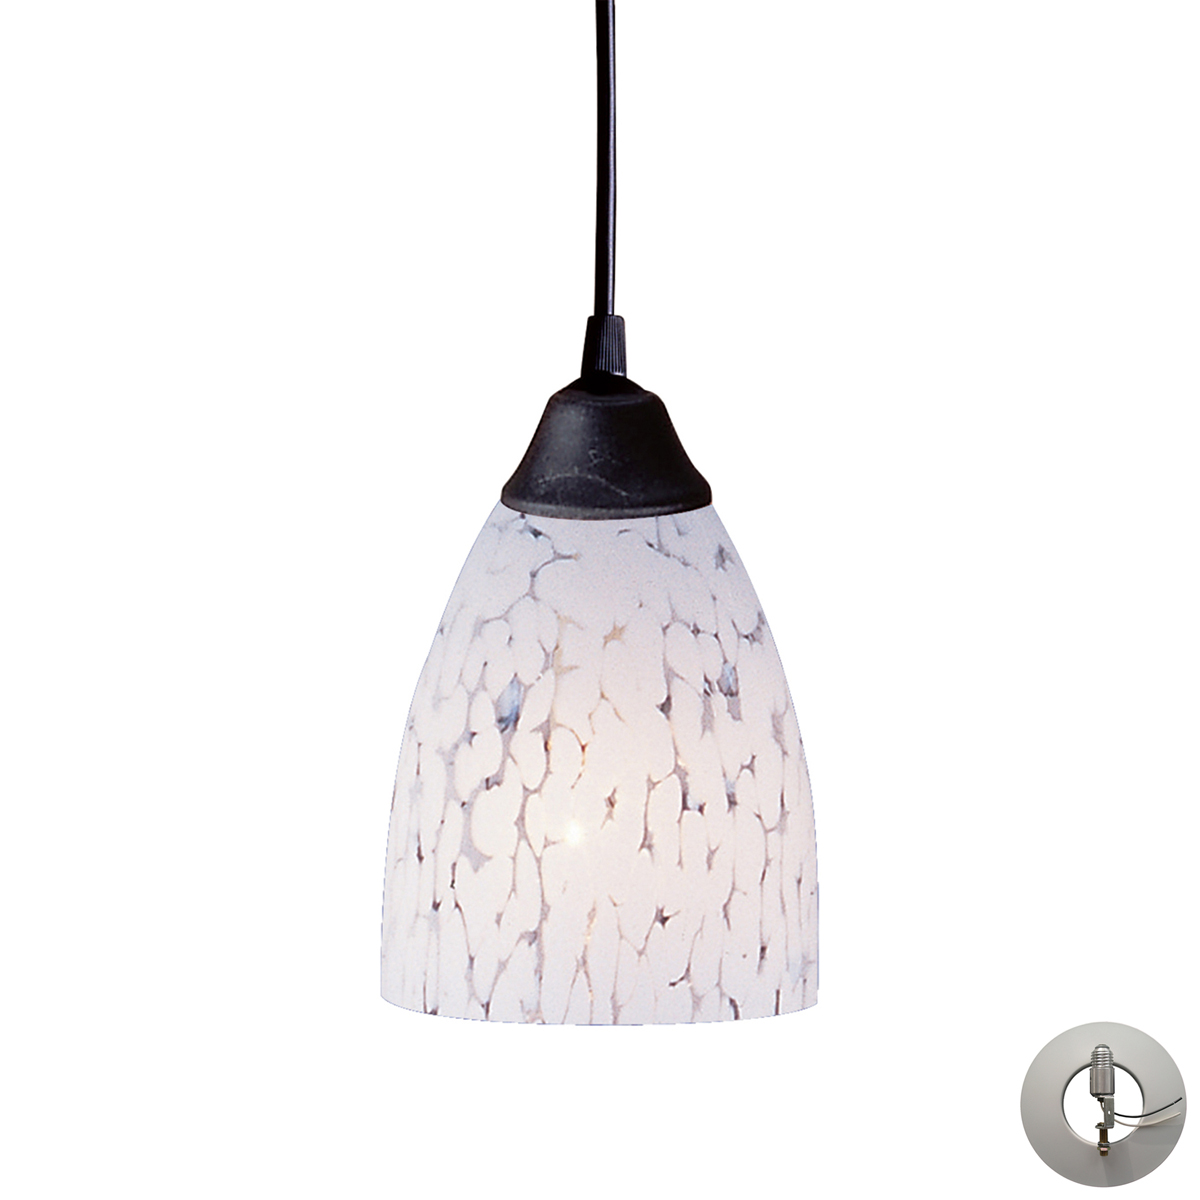 elk lighting 406 1sw la classico 5 inch mini pendant. Black Bedroom Furniture Sets. Home Design Ideas